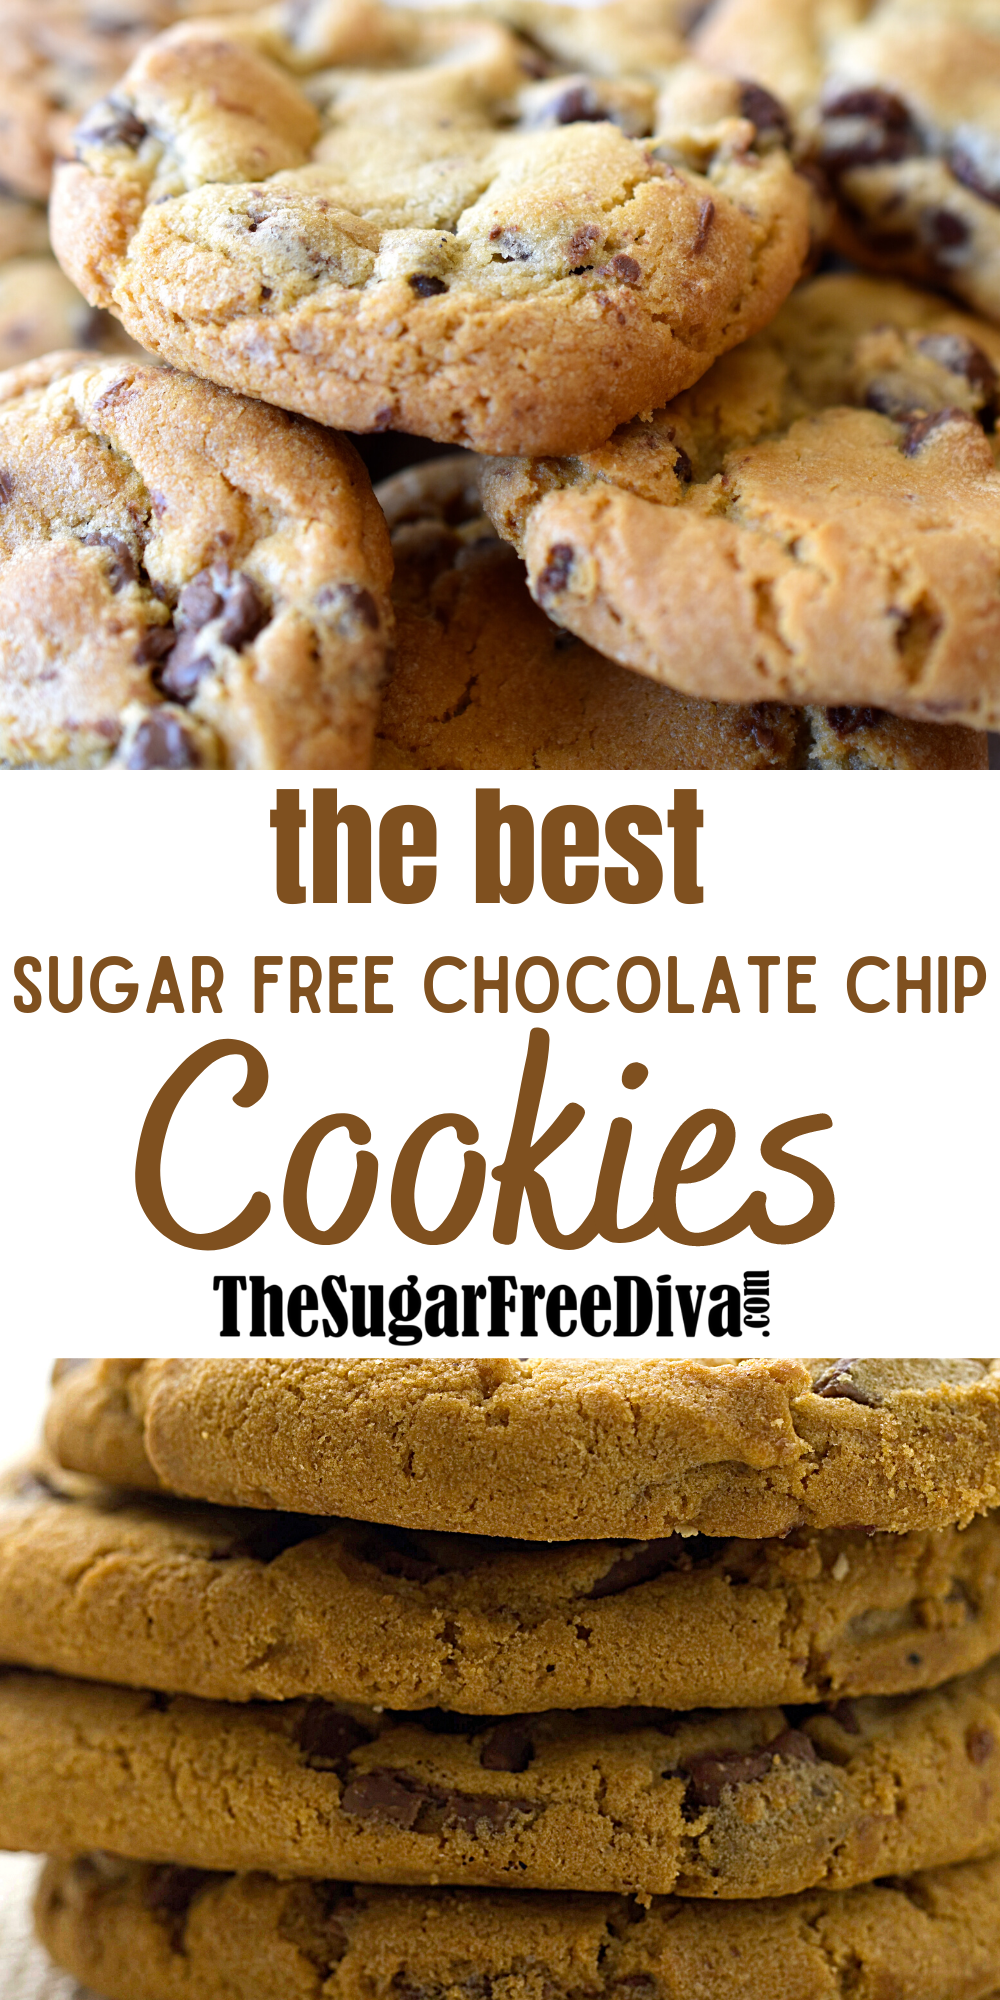 How to Make Sugar Free Chocolate Chip Cookies that